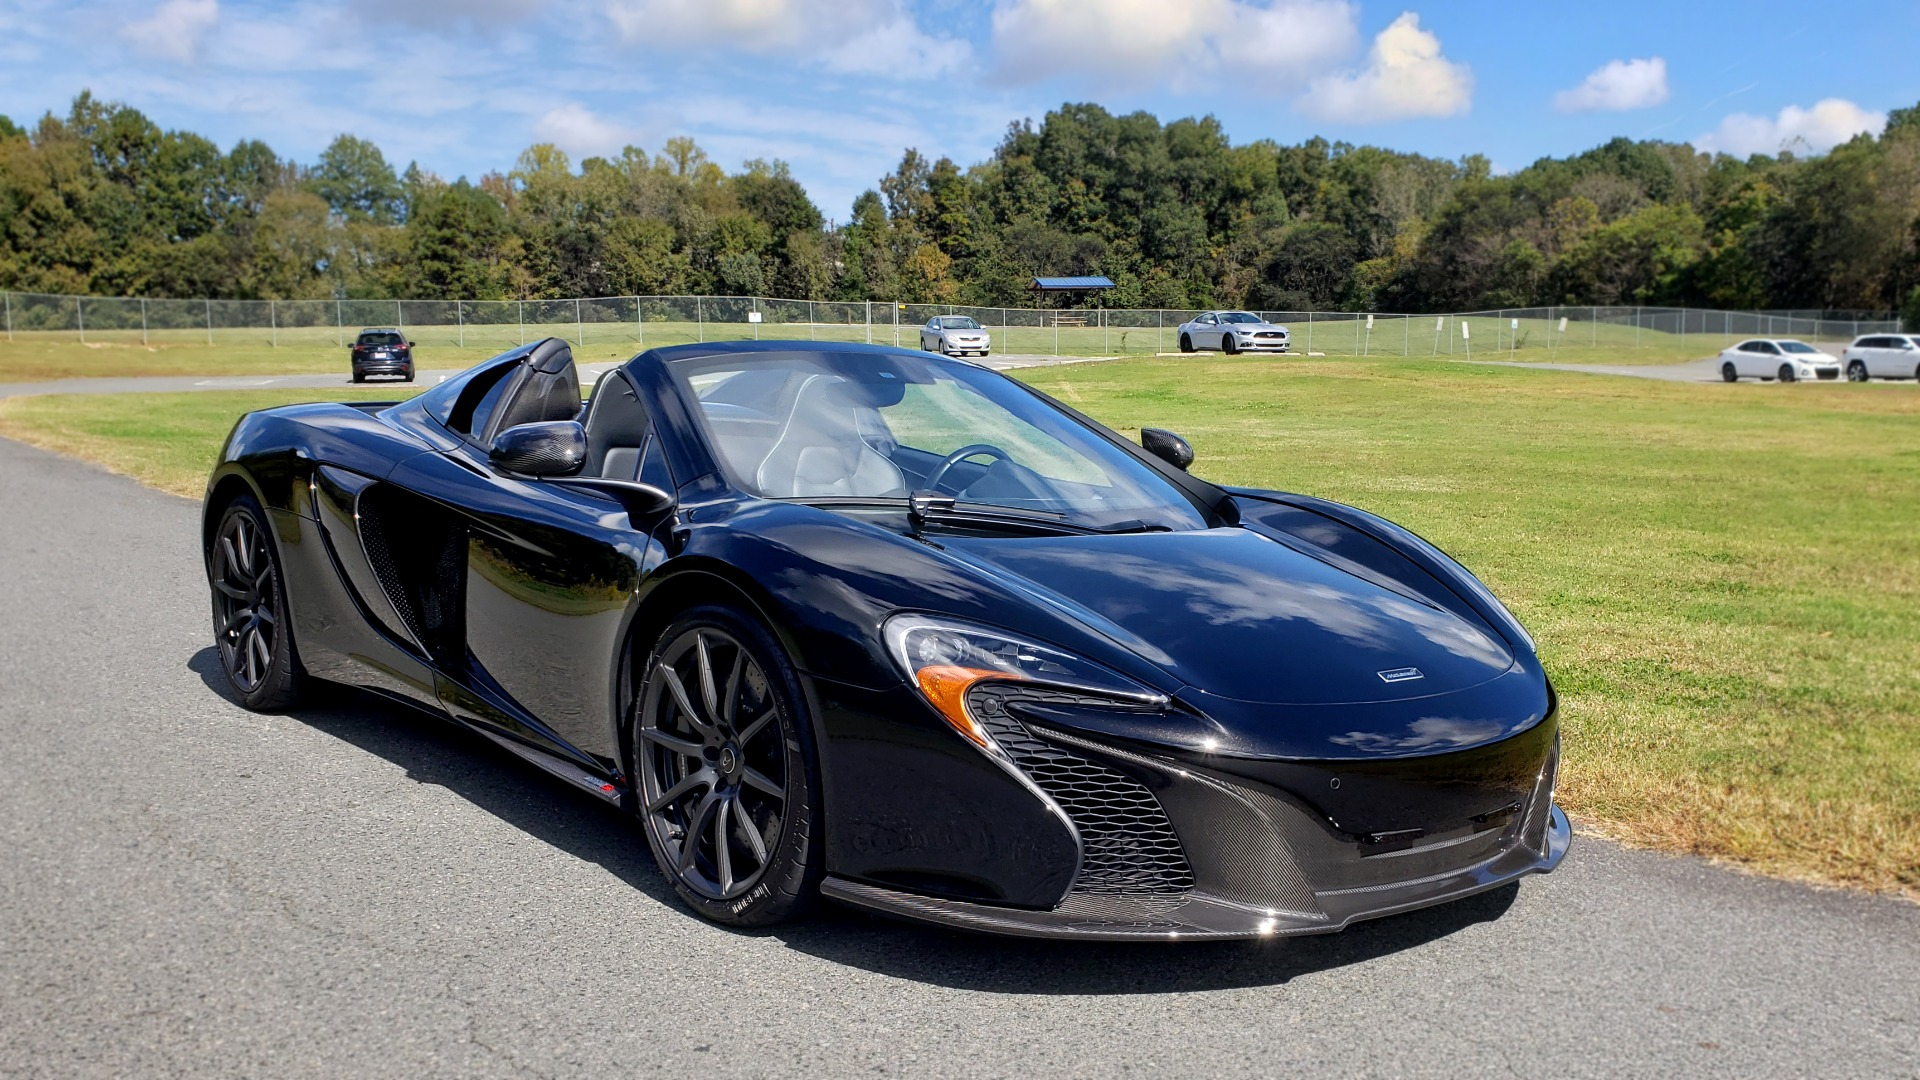 Used 2016 McLaren 650S SPIDER / 641HP / PARK SENSORS / LOW MILES / 1-OWNER for sale Sold at Formula Imports in Charlotte NC 28227 13